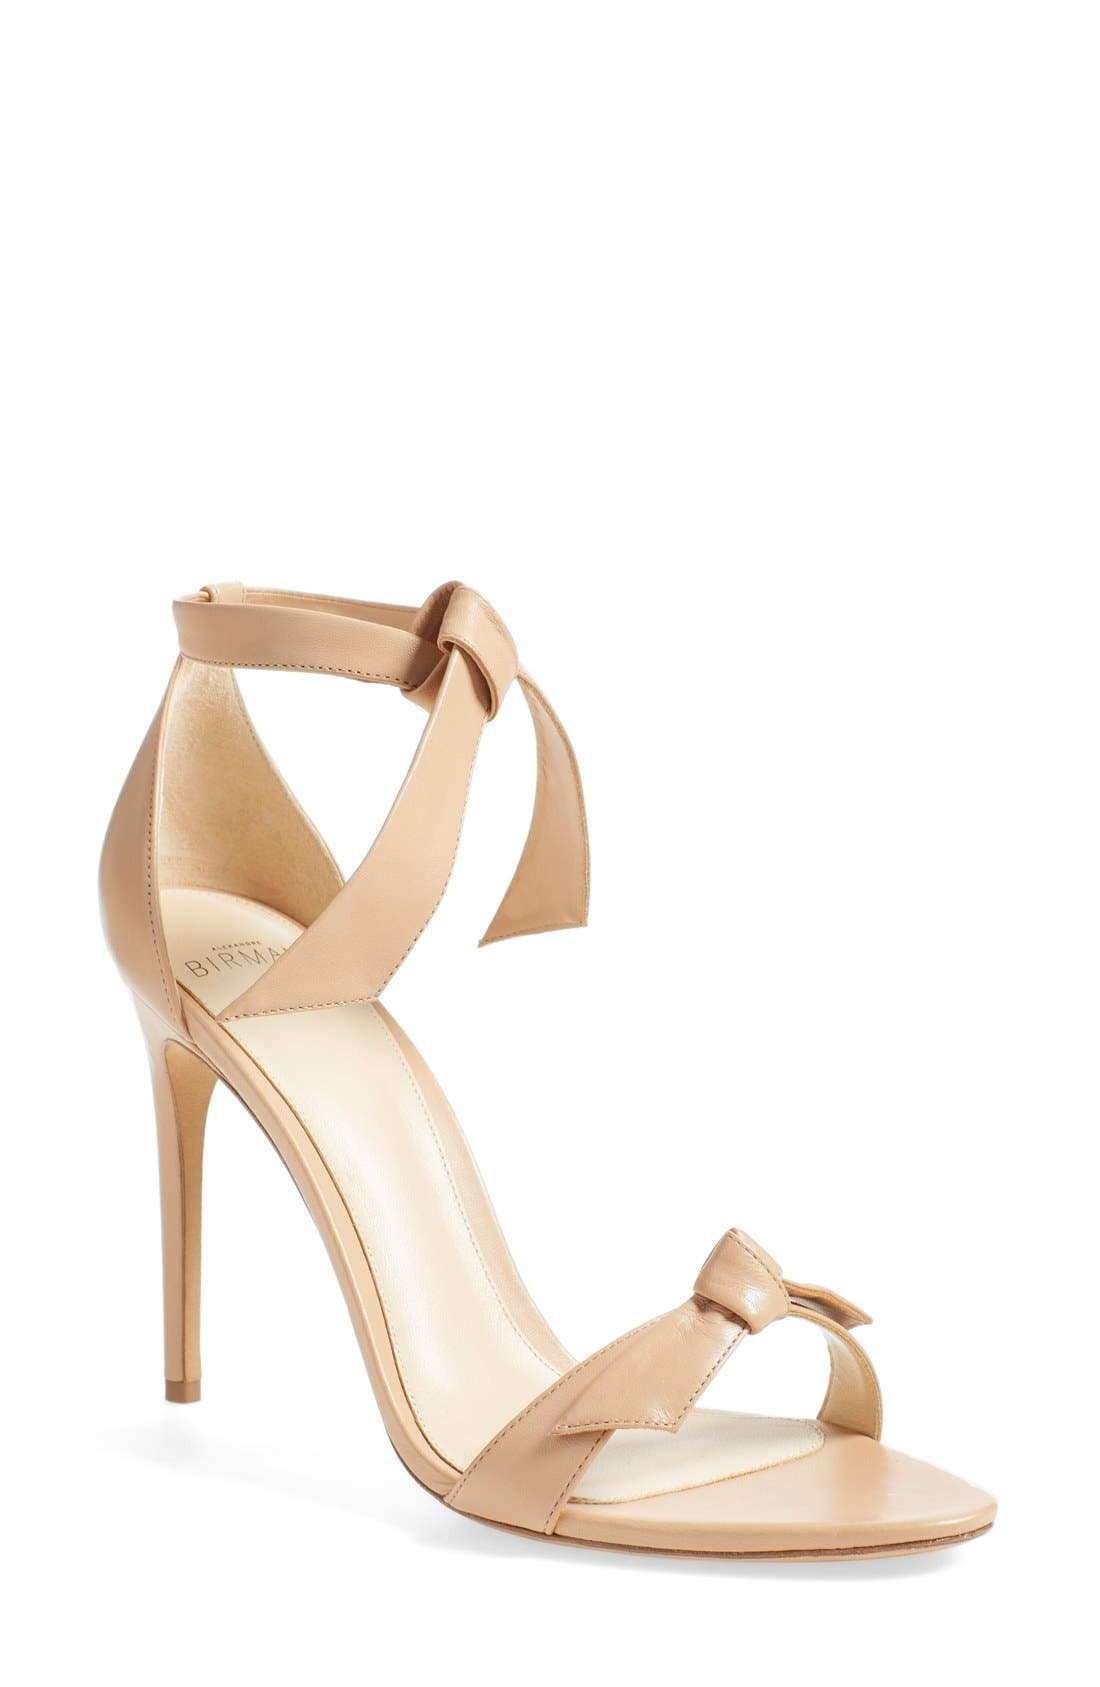 Alexandre Birman Clarita Bow-Embellished Leather Sandals In Beige